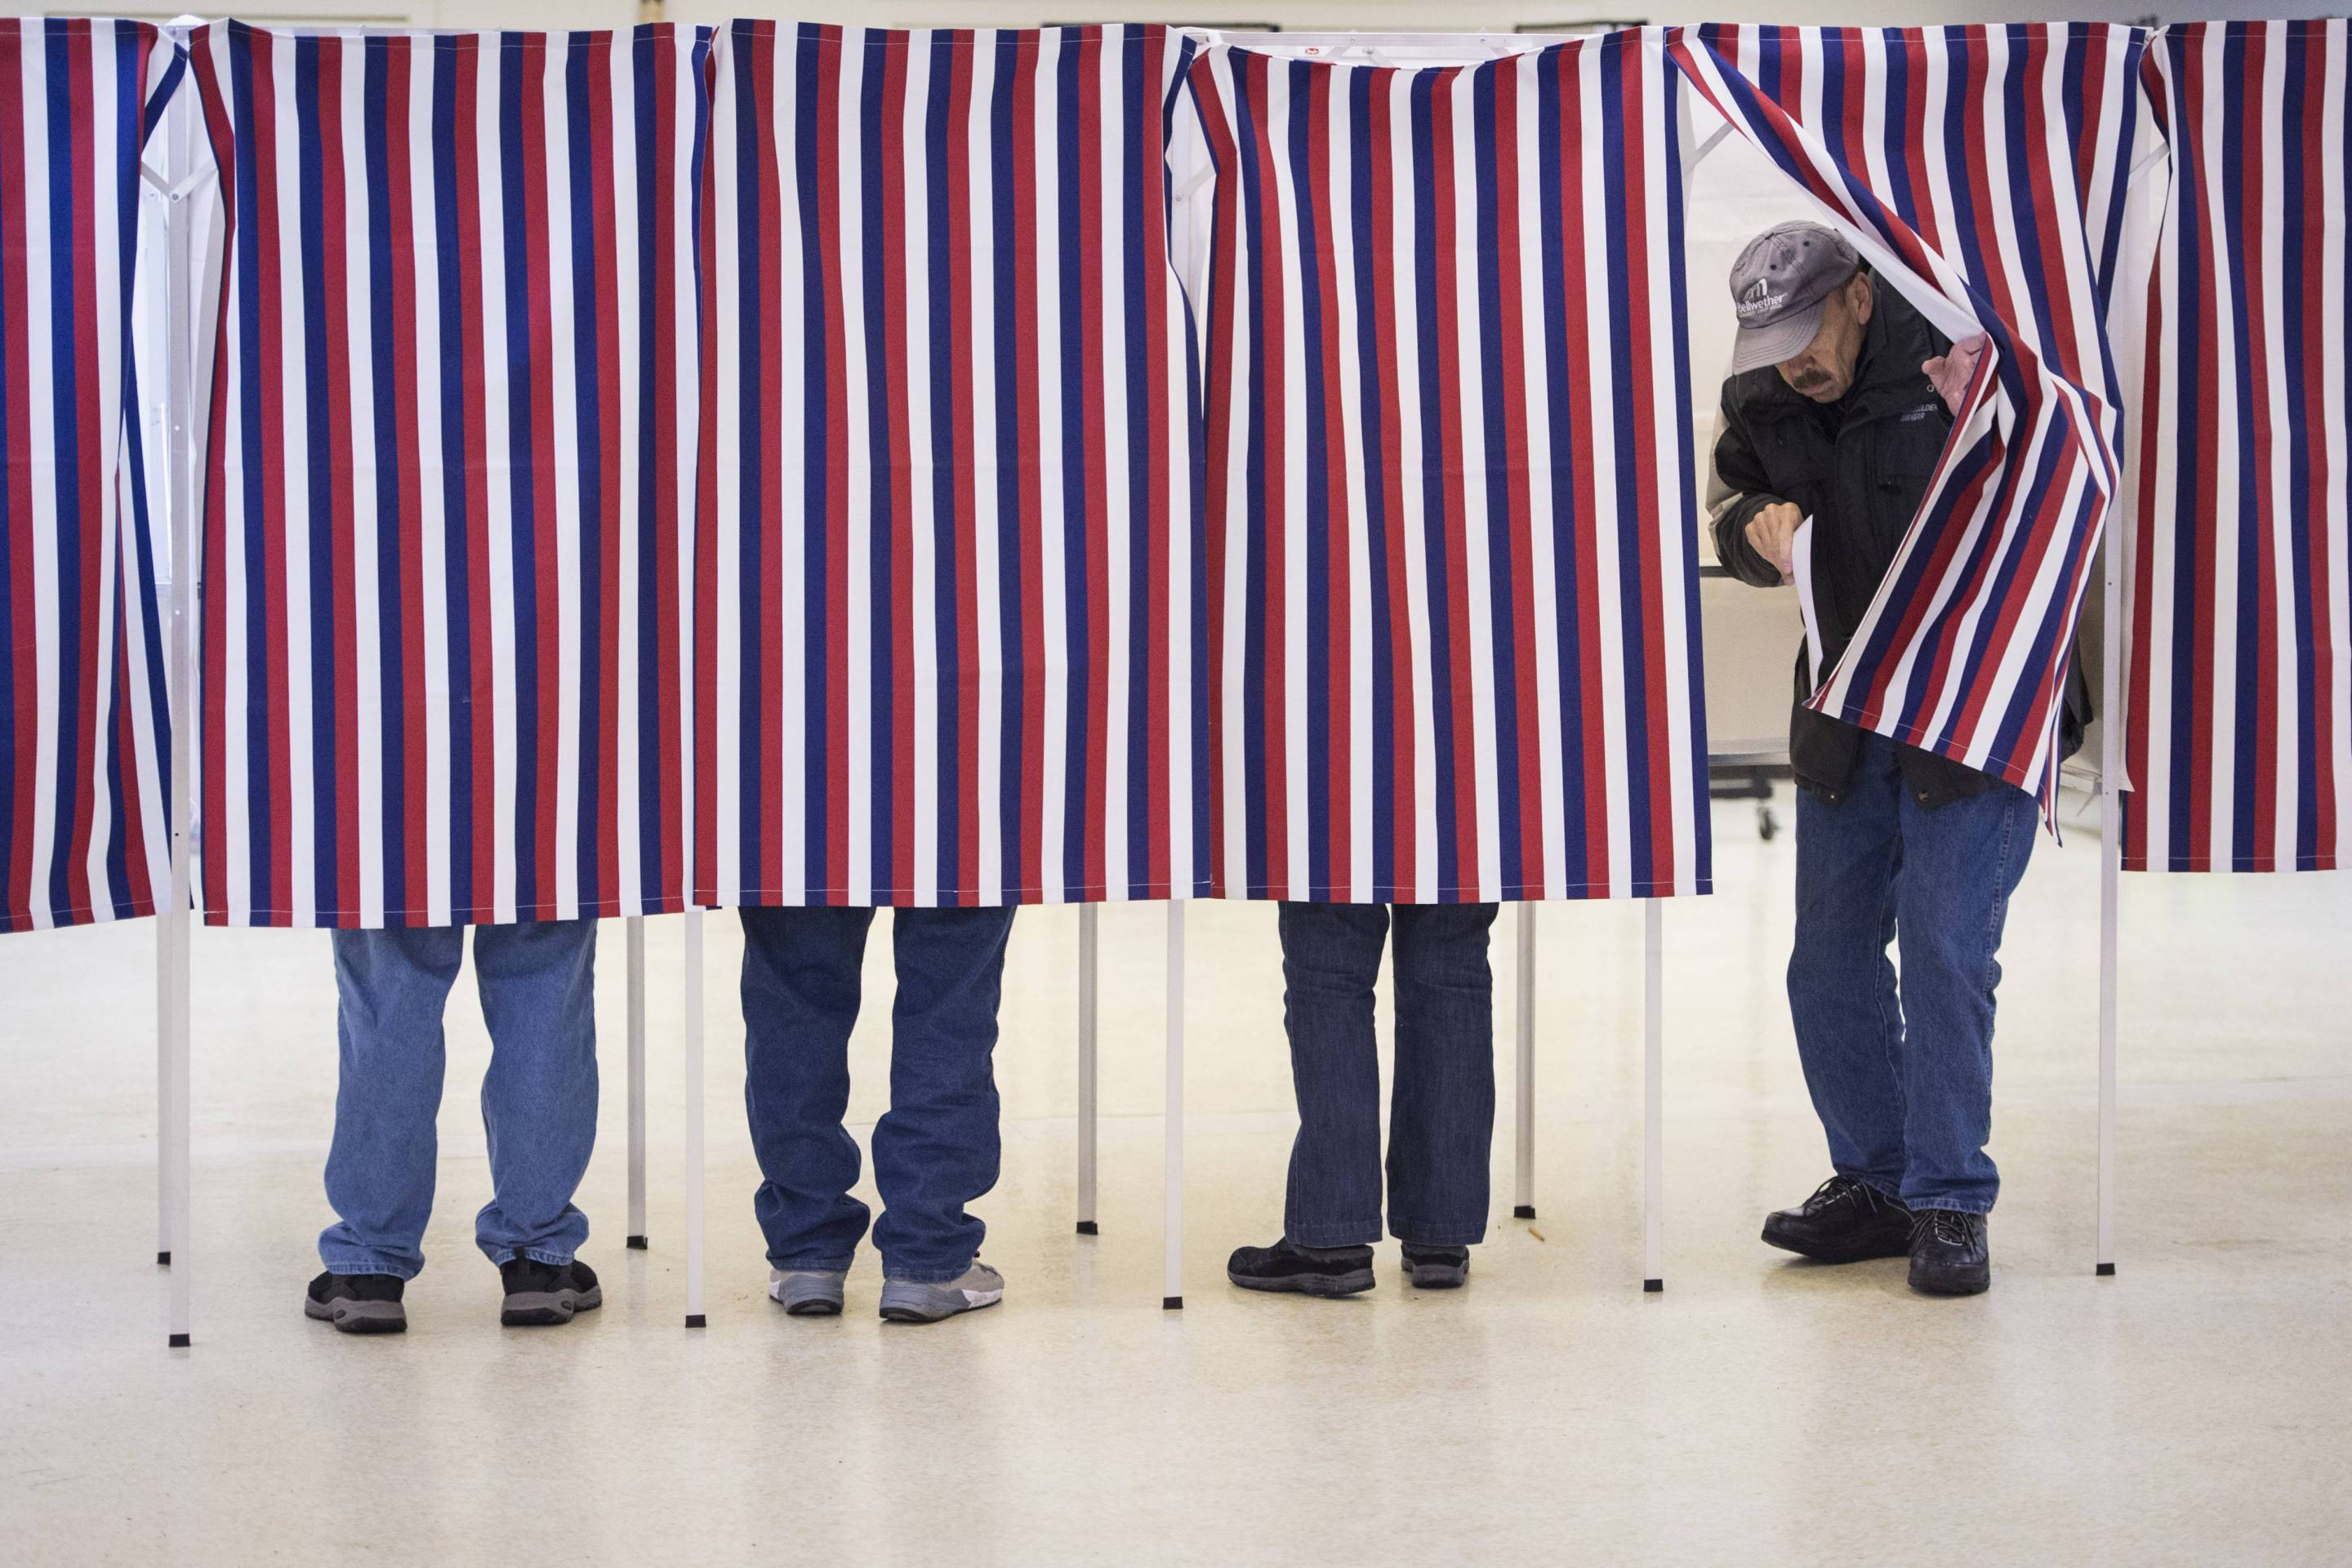 Primary voting in New Hampshire.